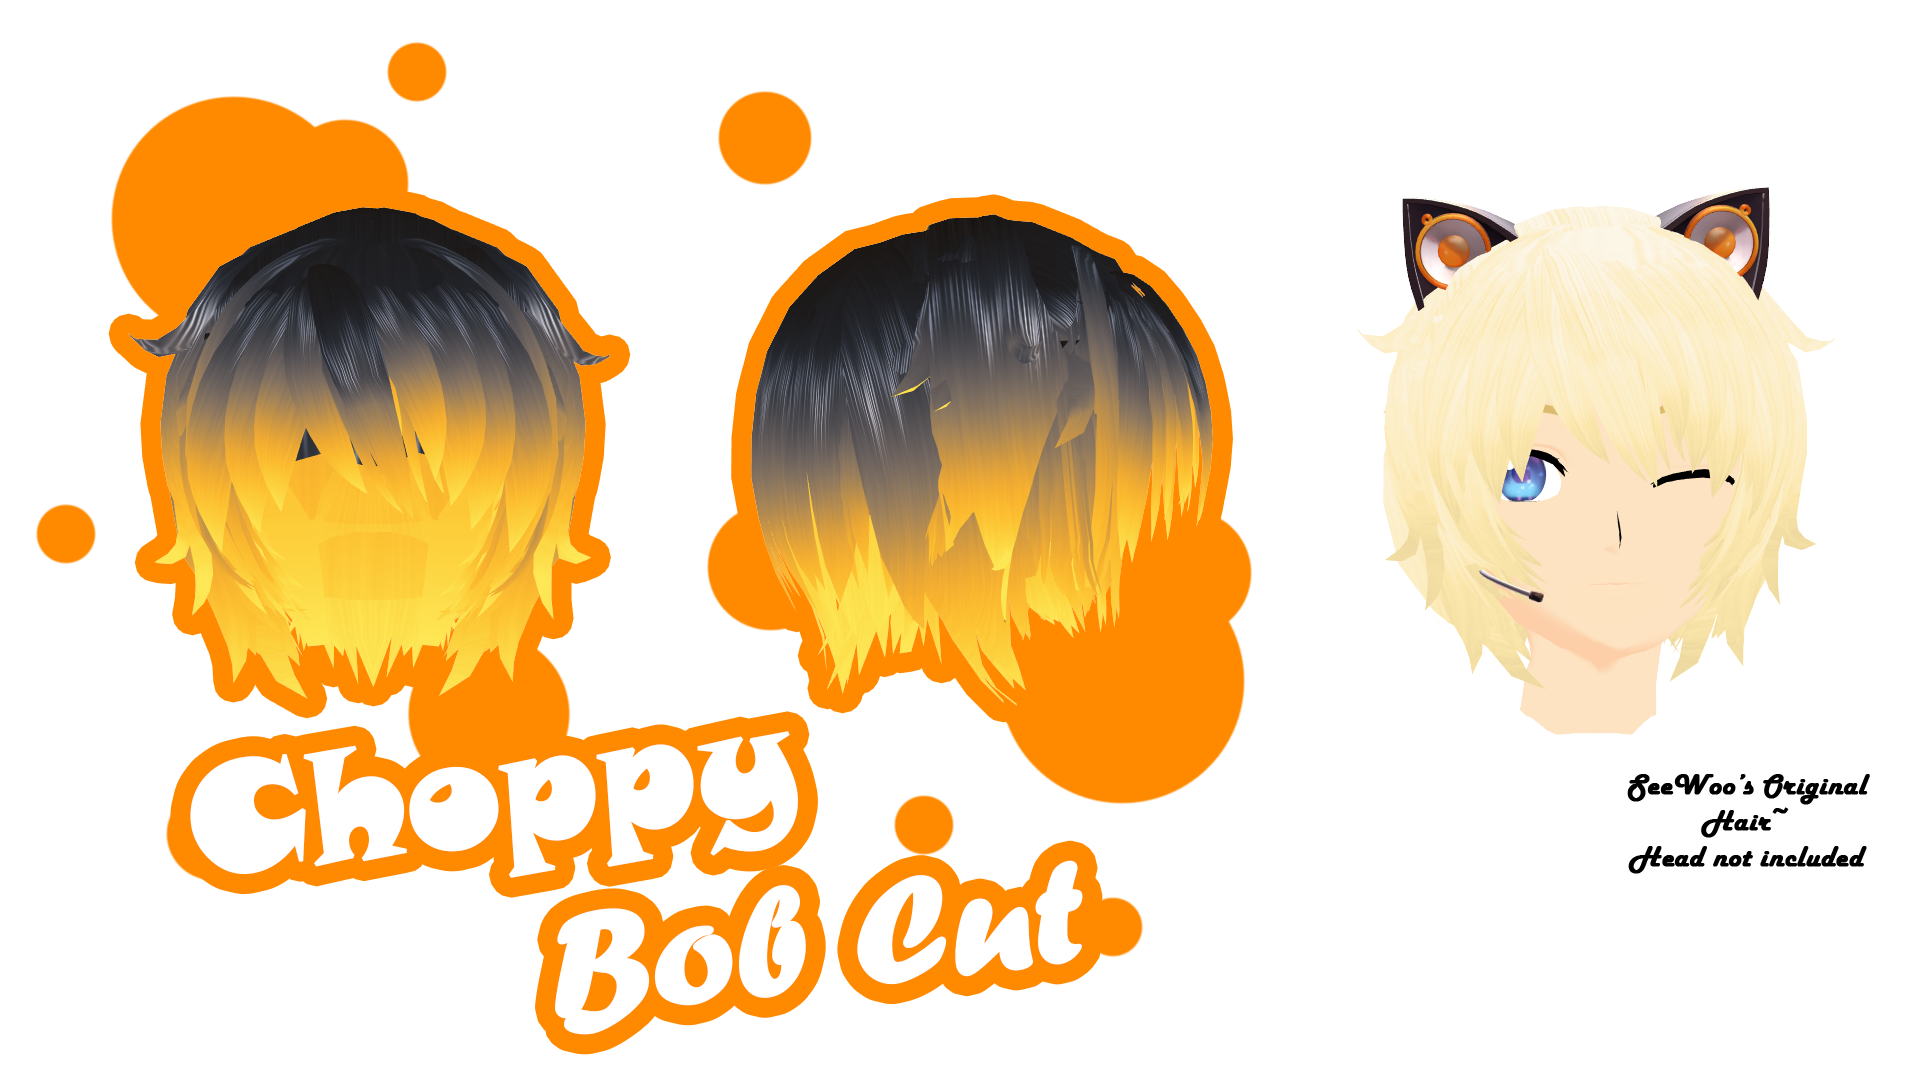 Mmd Parts Hair Choppy Bob Cut Dl By Colorsoforion